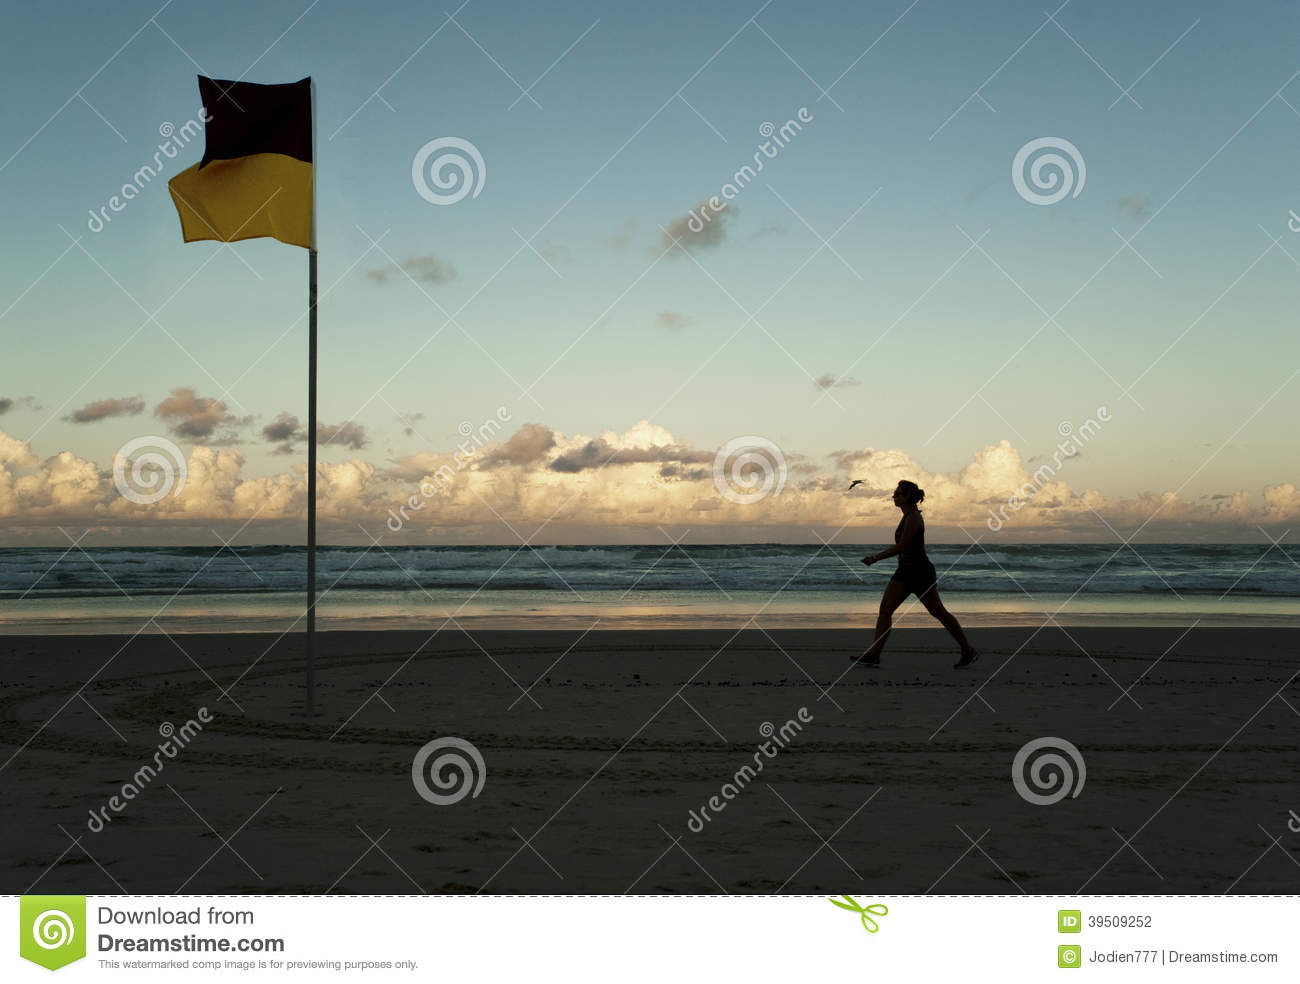 Walking past the swimming flag